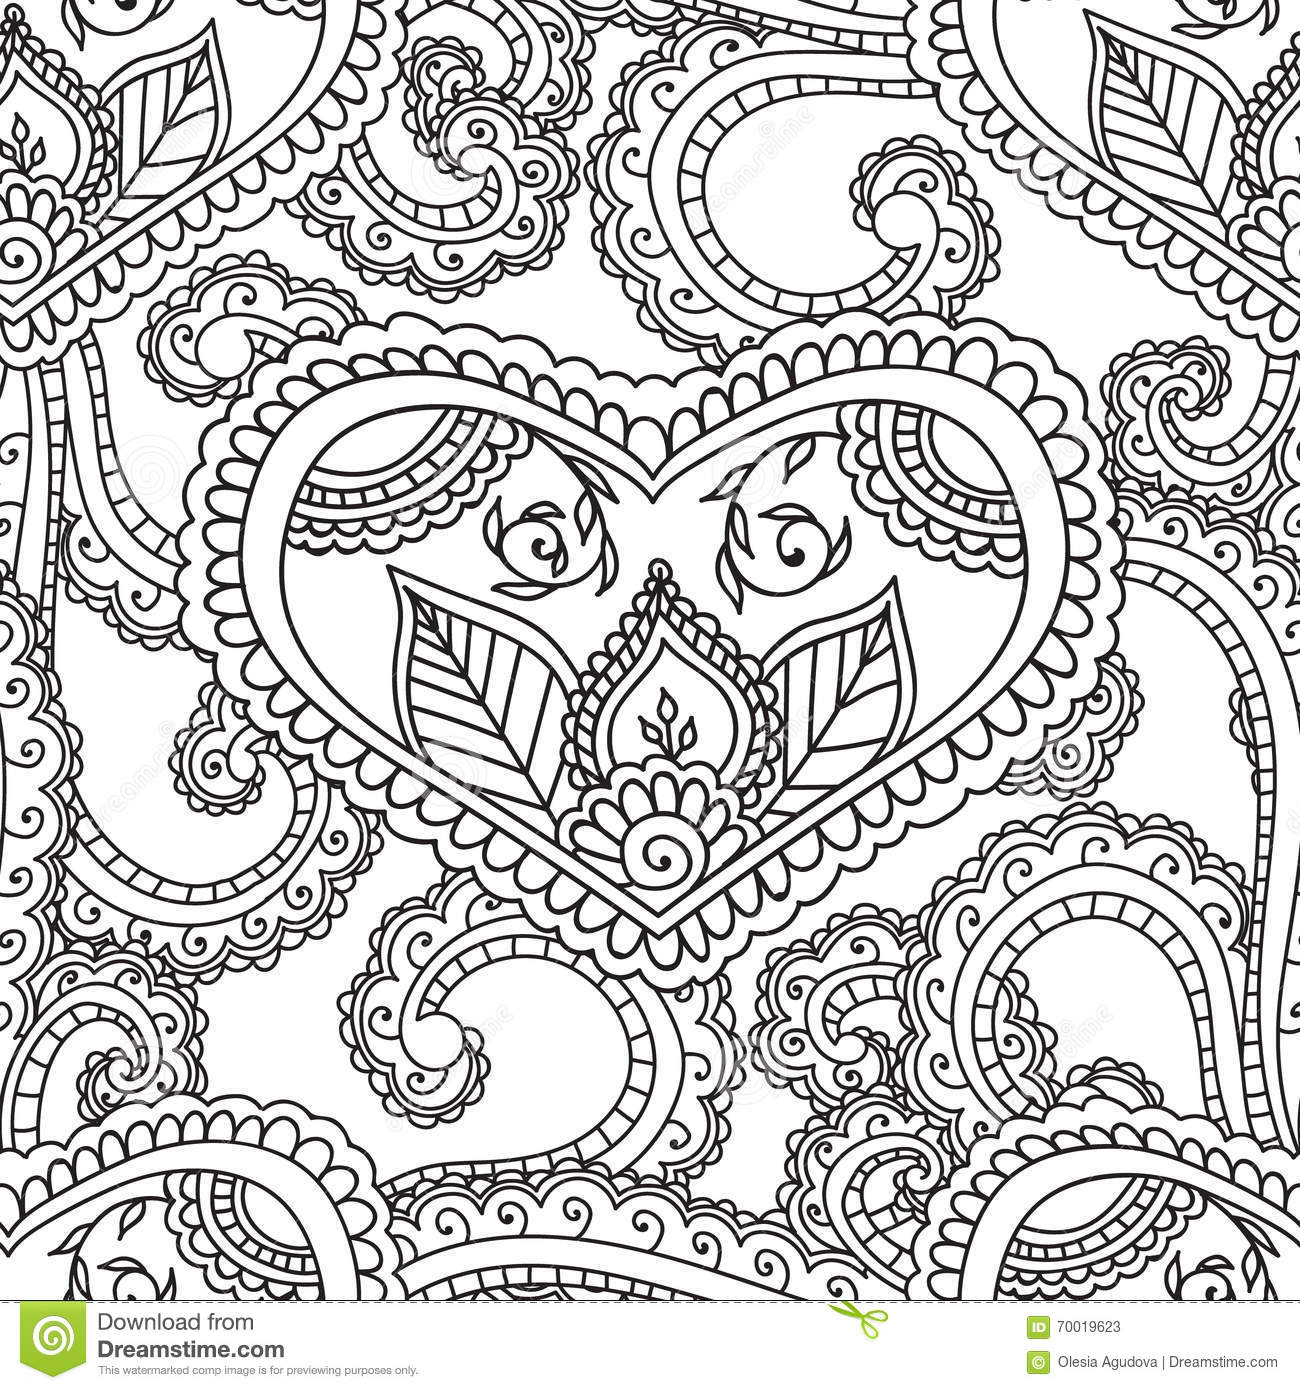 Coloring pages henna - Download